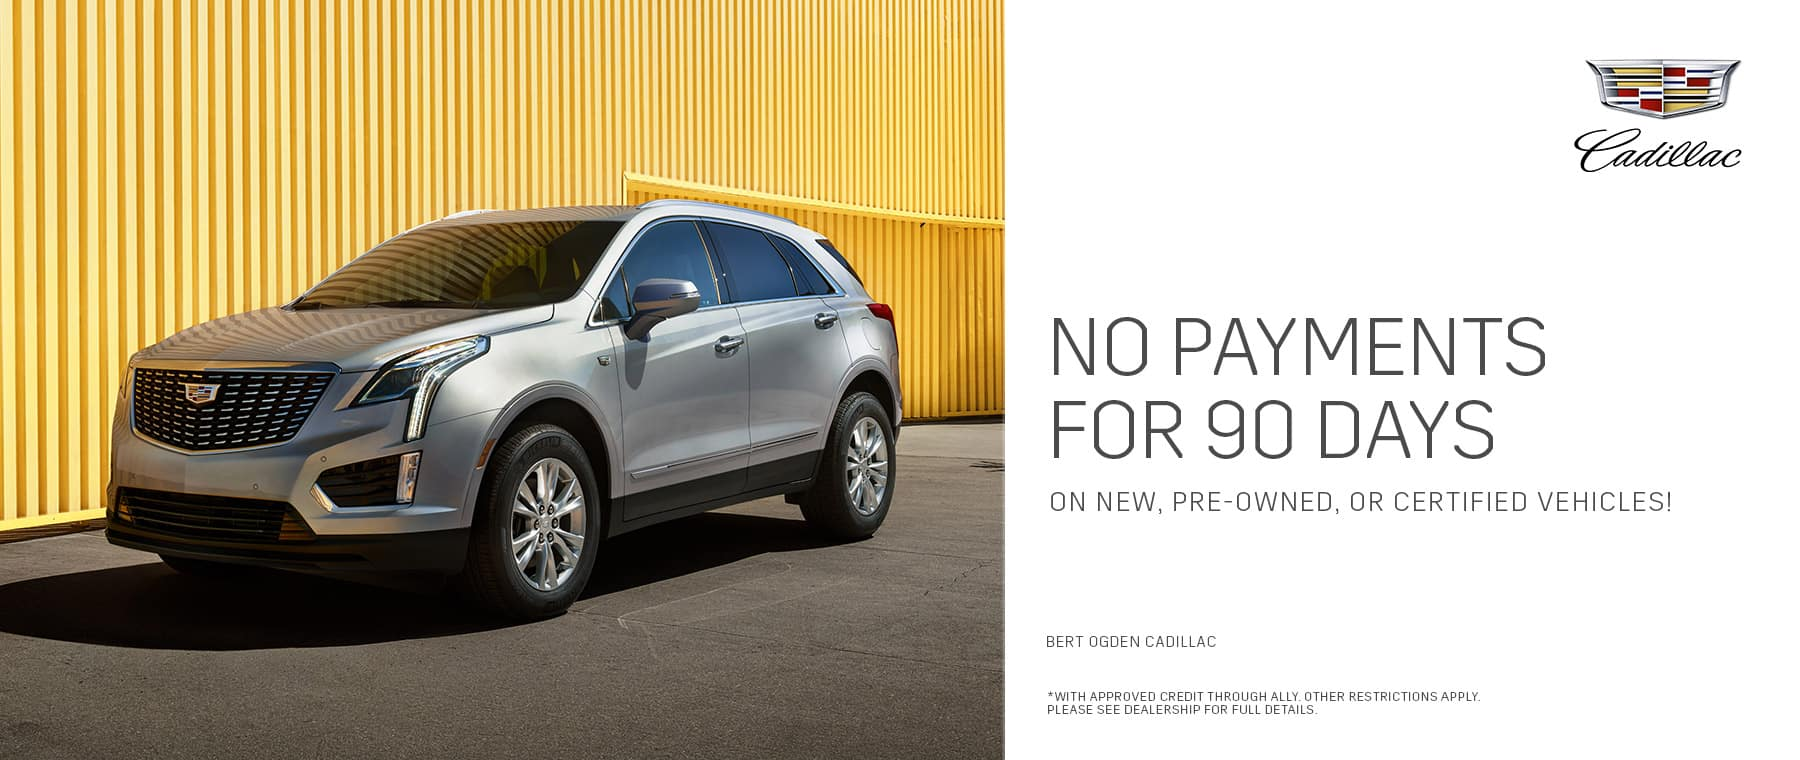 No Payments For 90 Days - Bert Ogden Cadillac in Mission, Texas